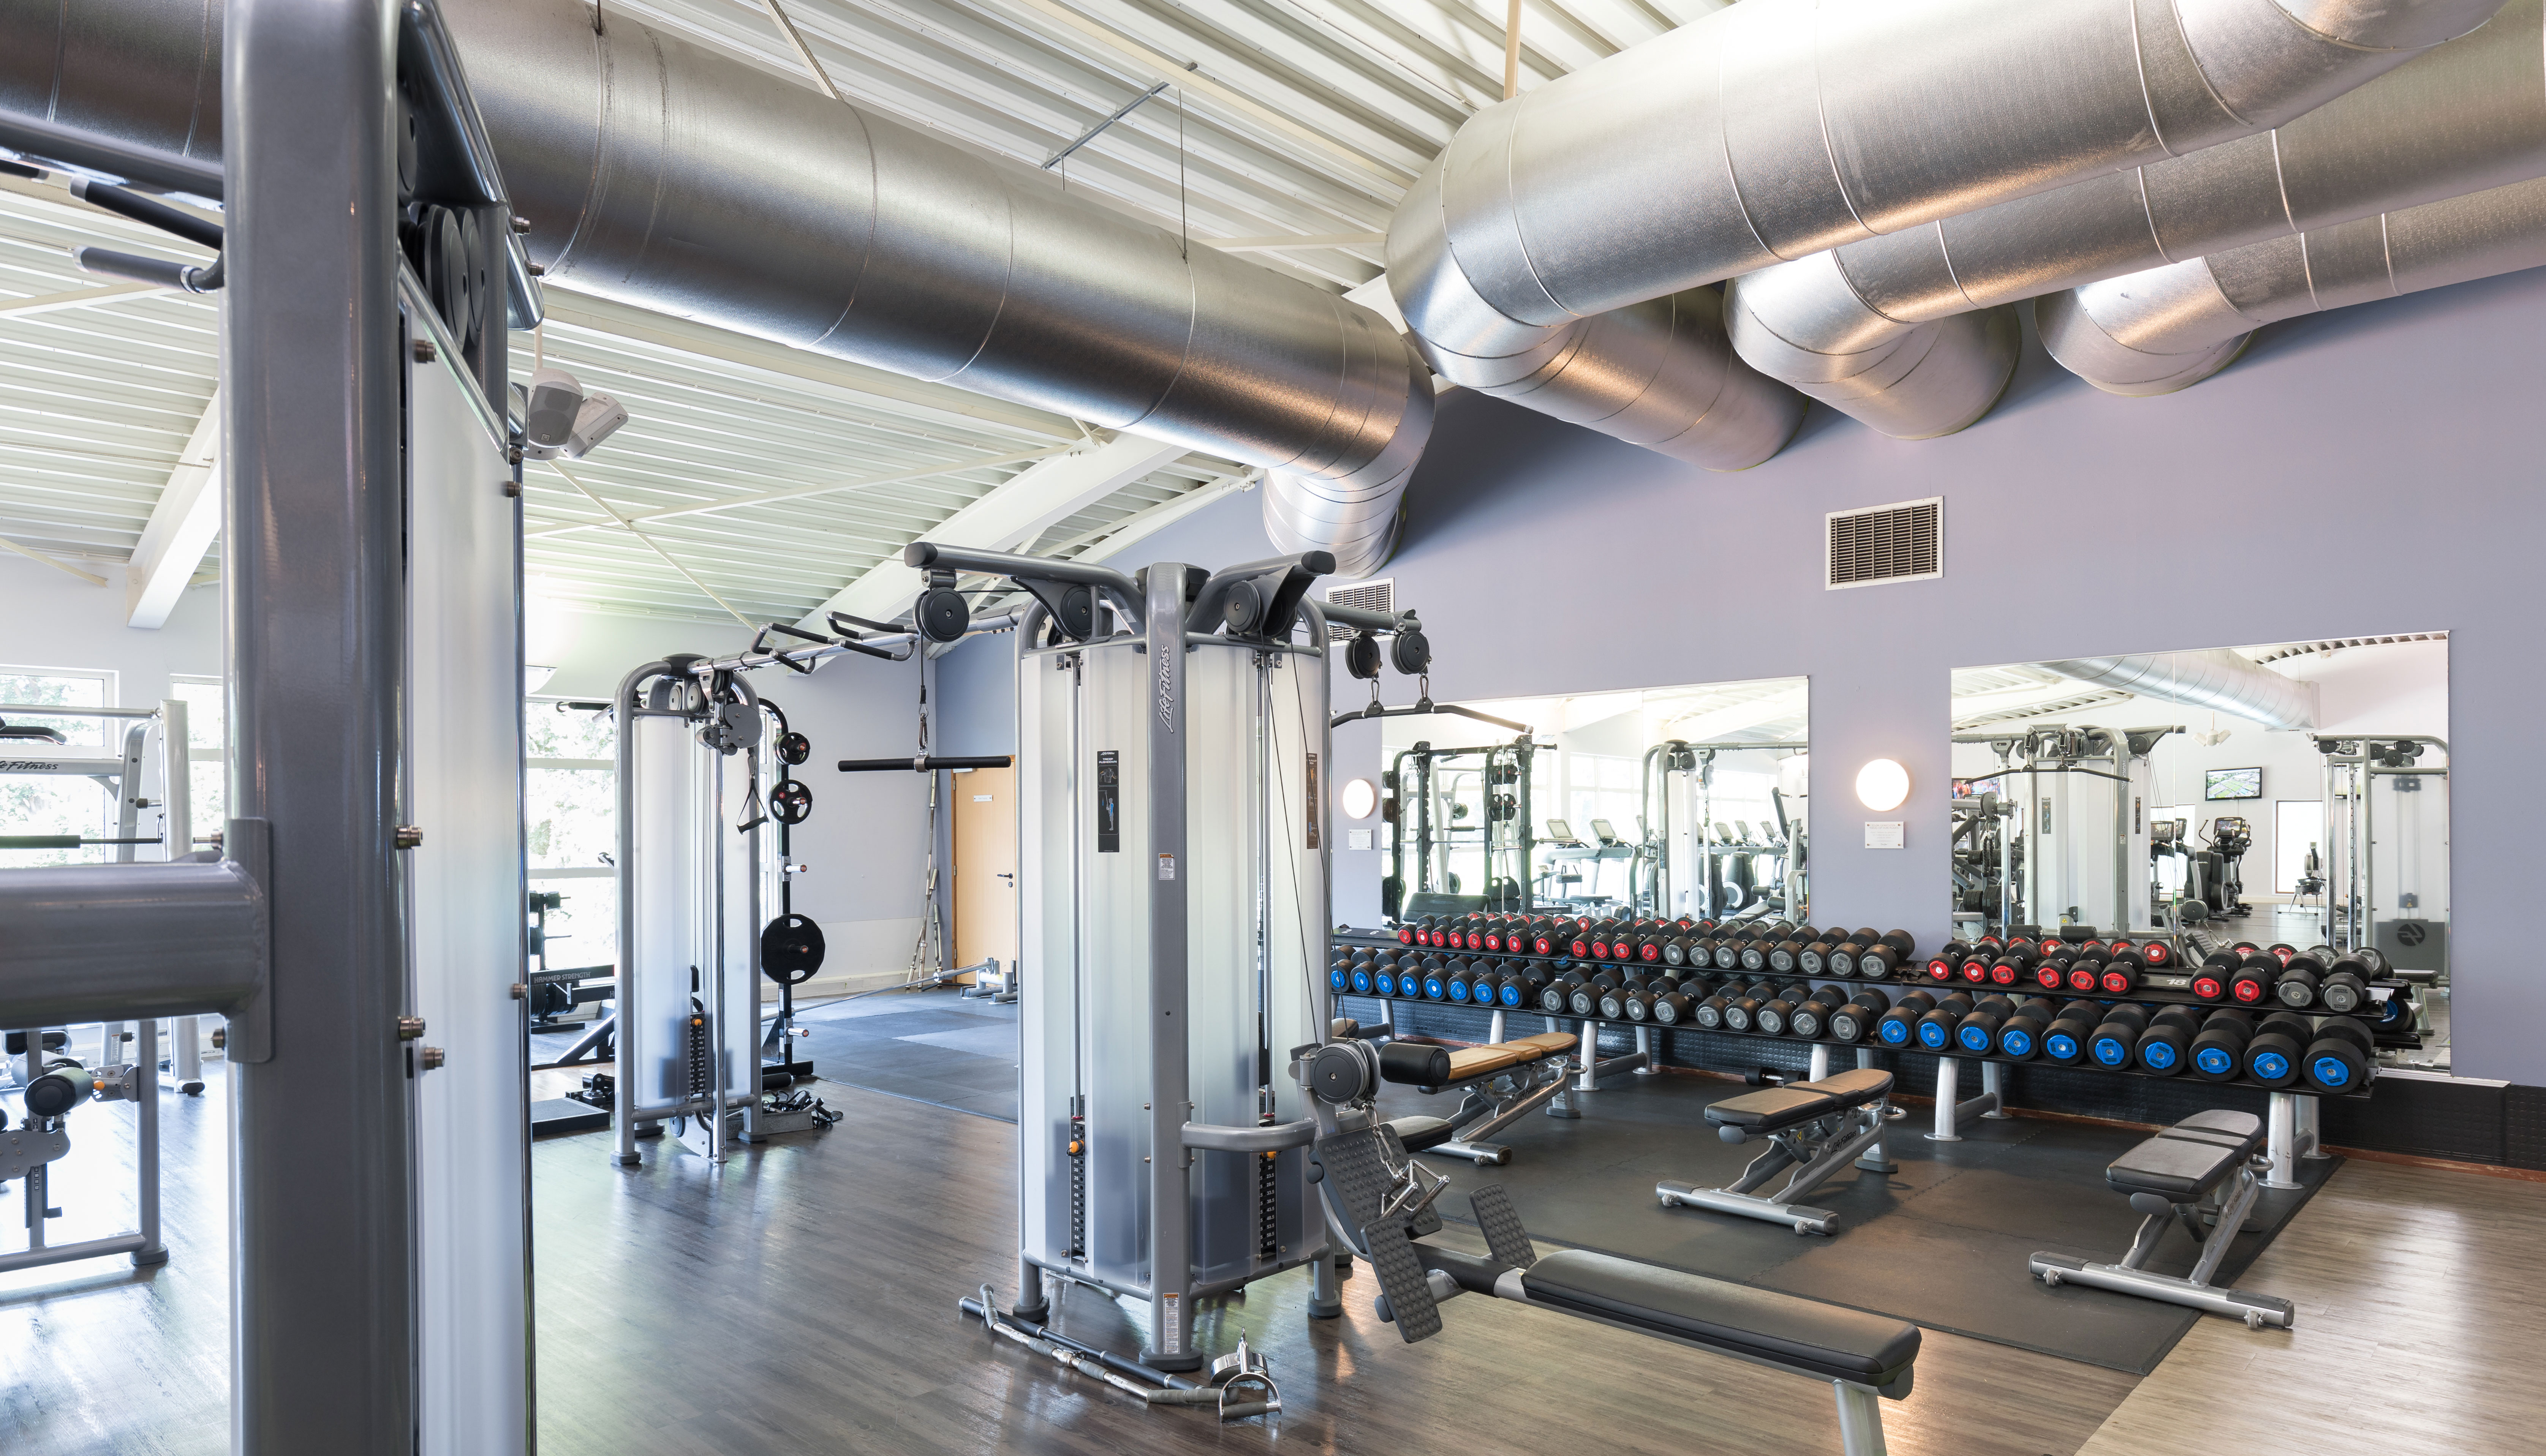 Image of the gym at David Lloyd Eindhoven